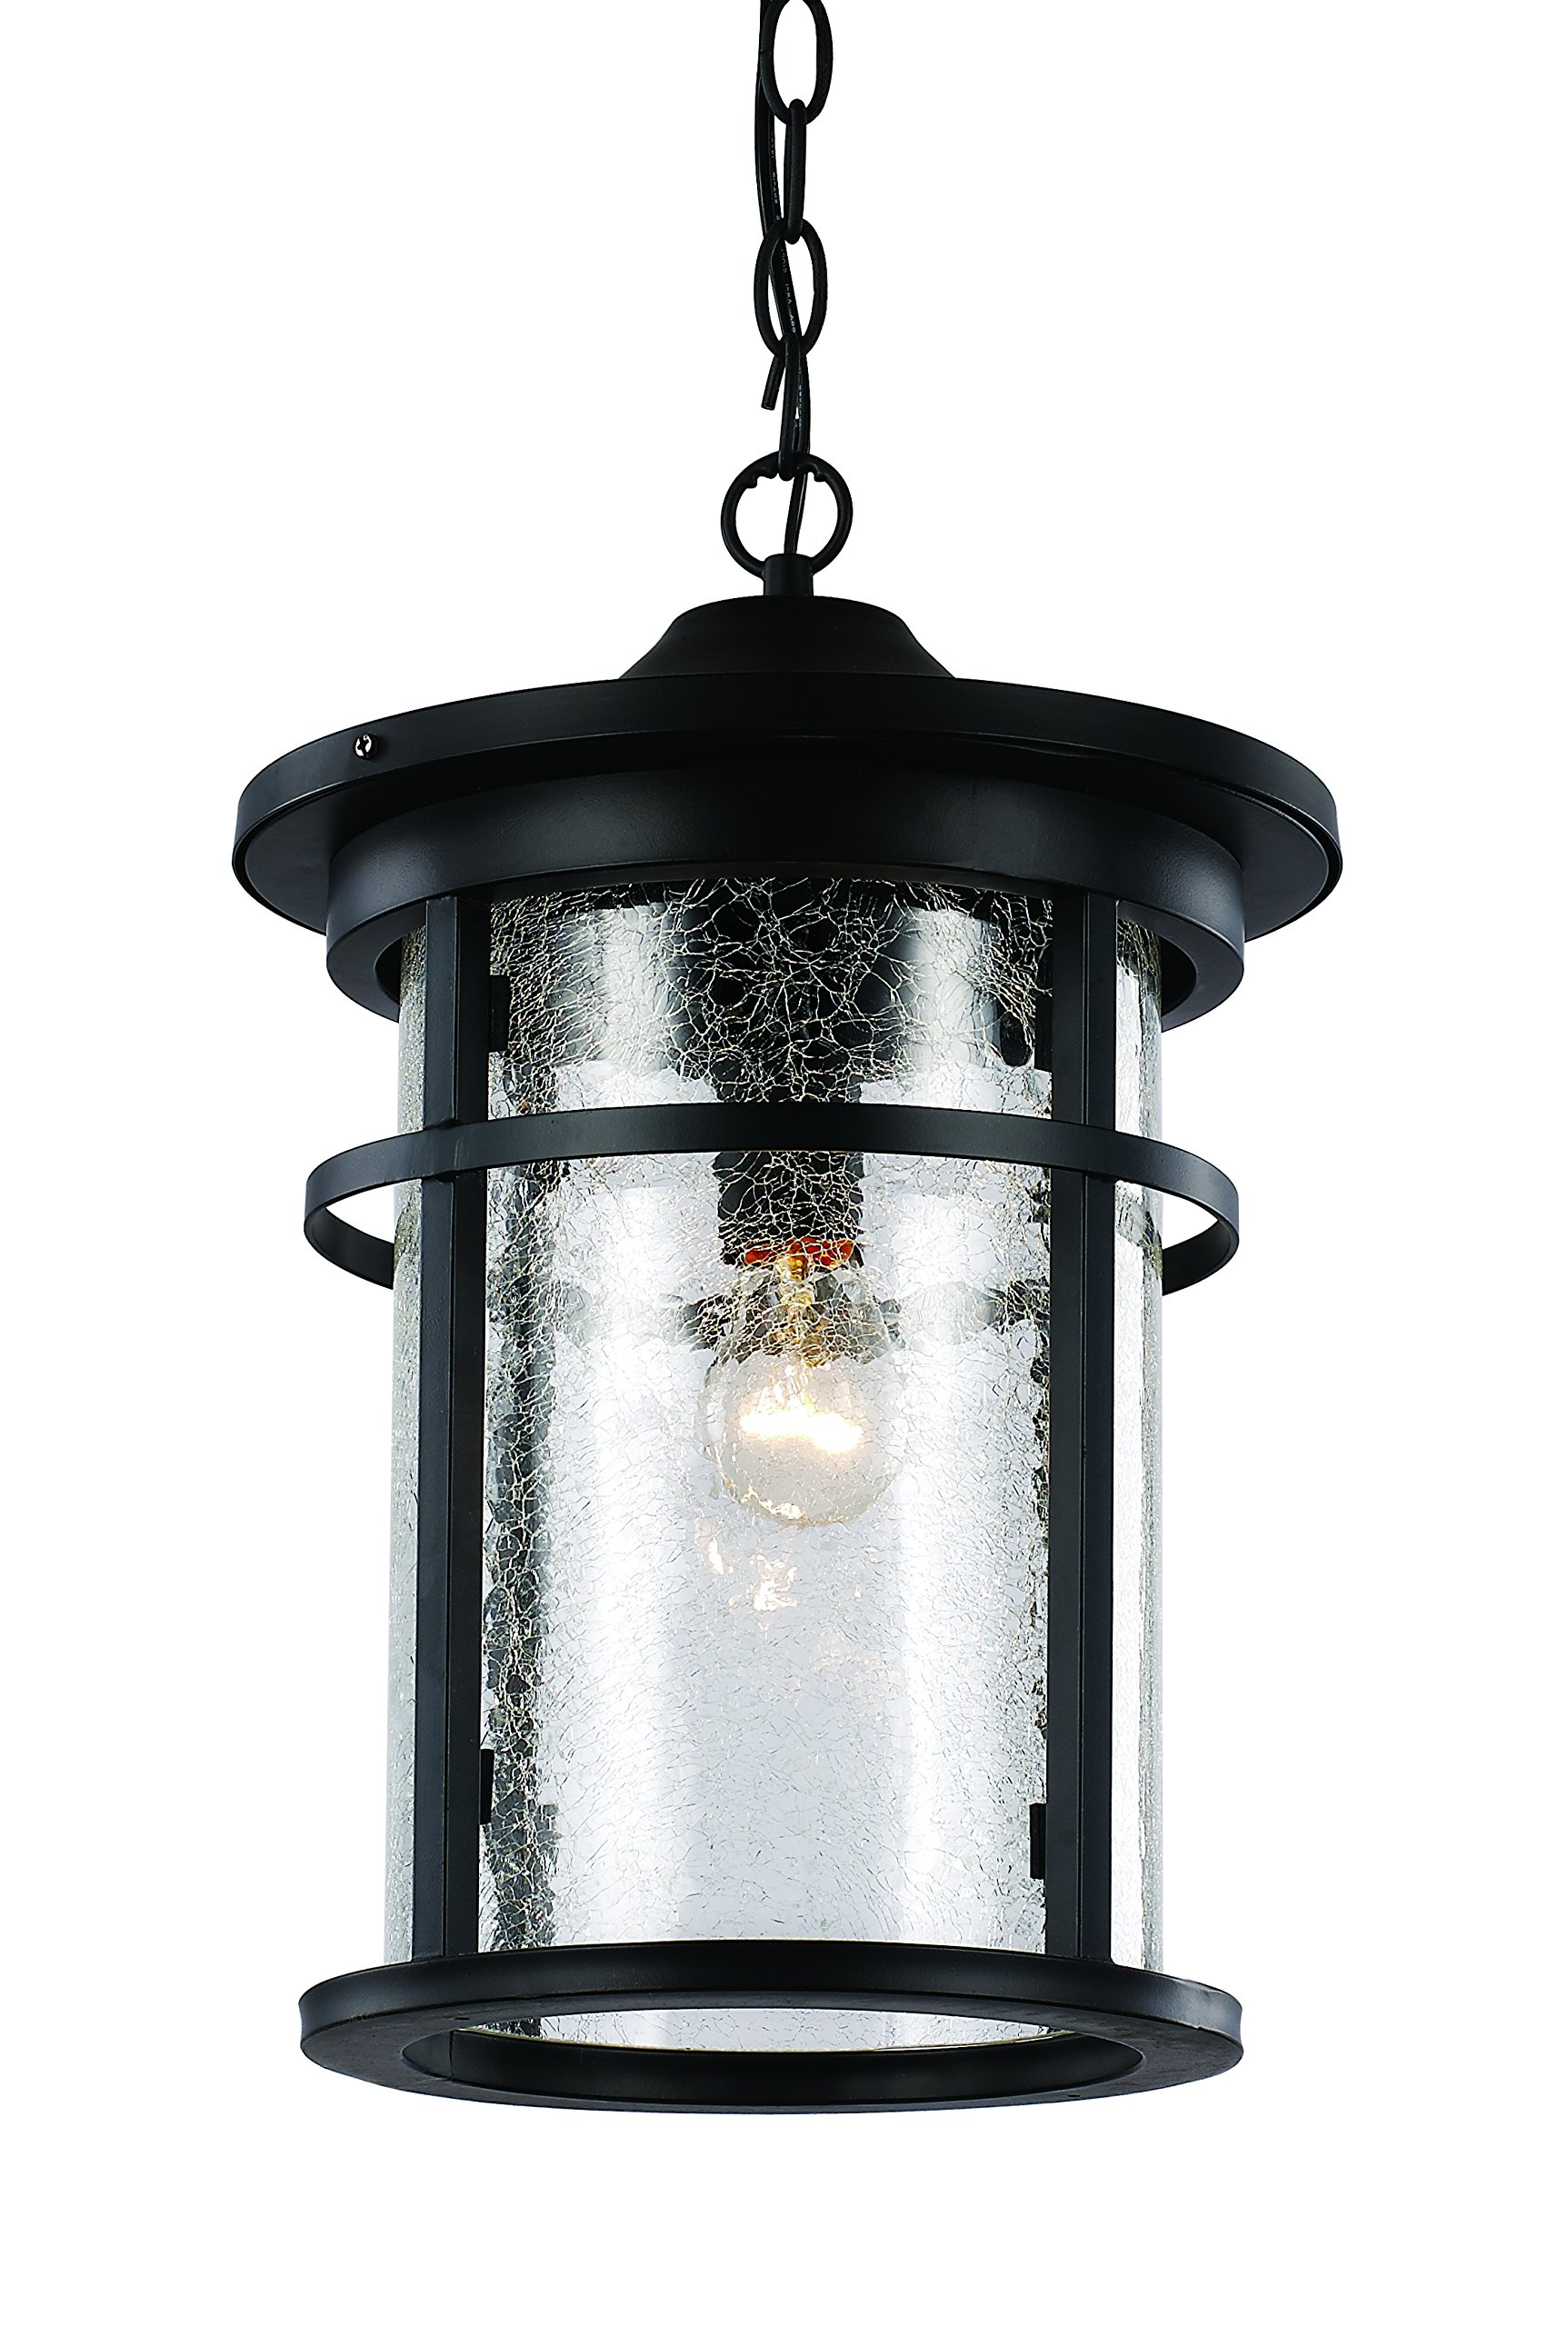 Trans Globe Lighting 40385 BK Outdoor Avalon 13.75'' Hanging Lantern, Black